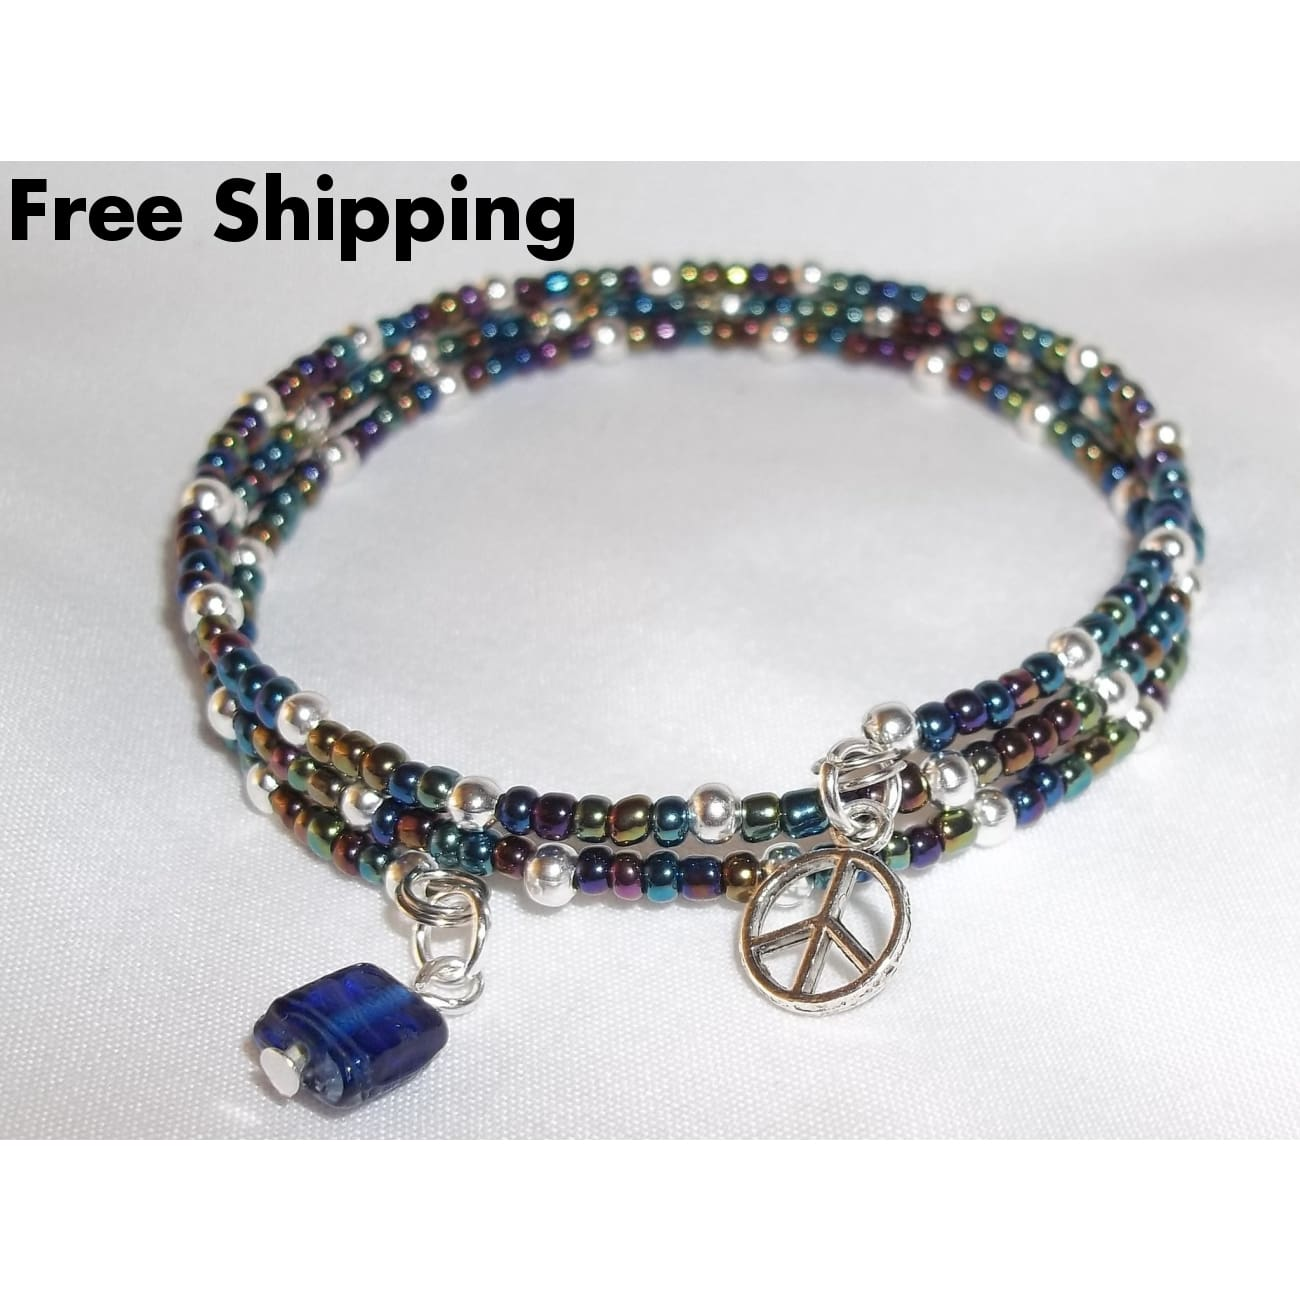 Peace Boho Beaded Hand Crafted Wrap Charm Bangle Bracelet - Bracelets